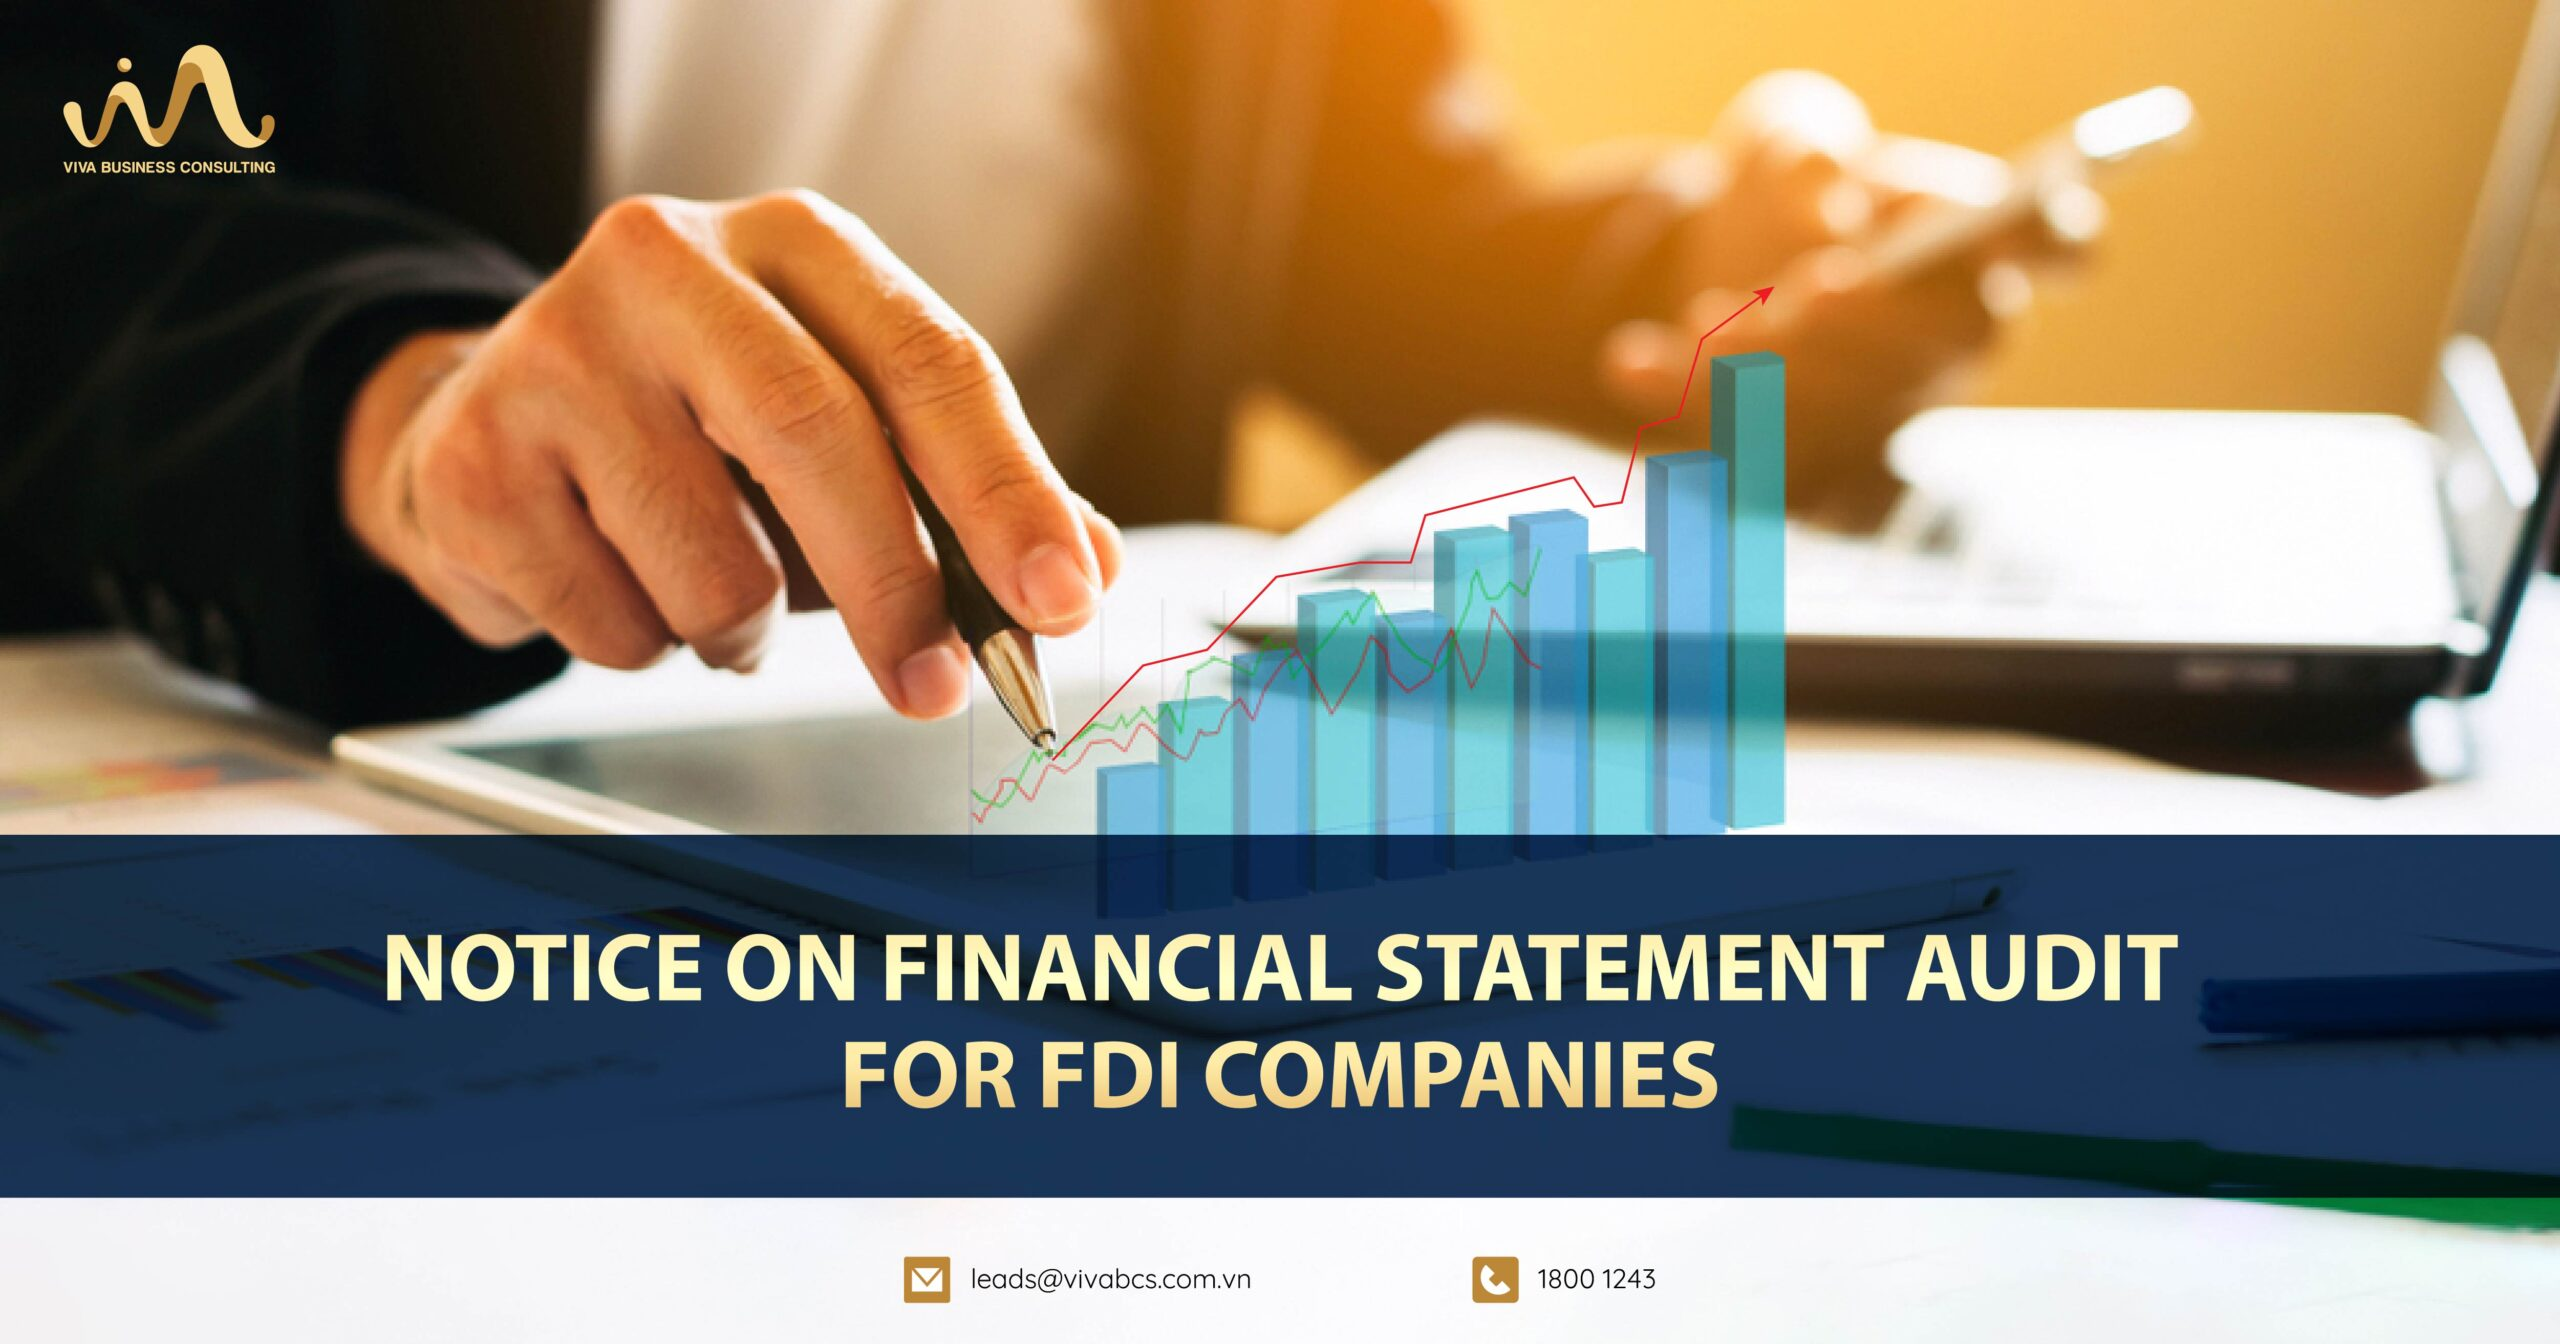 Notice on financial statement audit for FDI companies